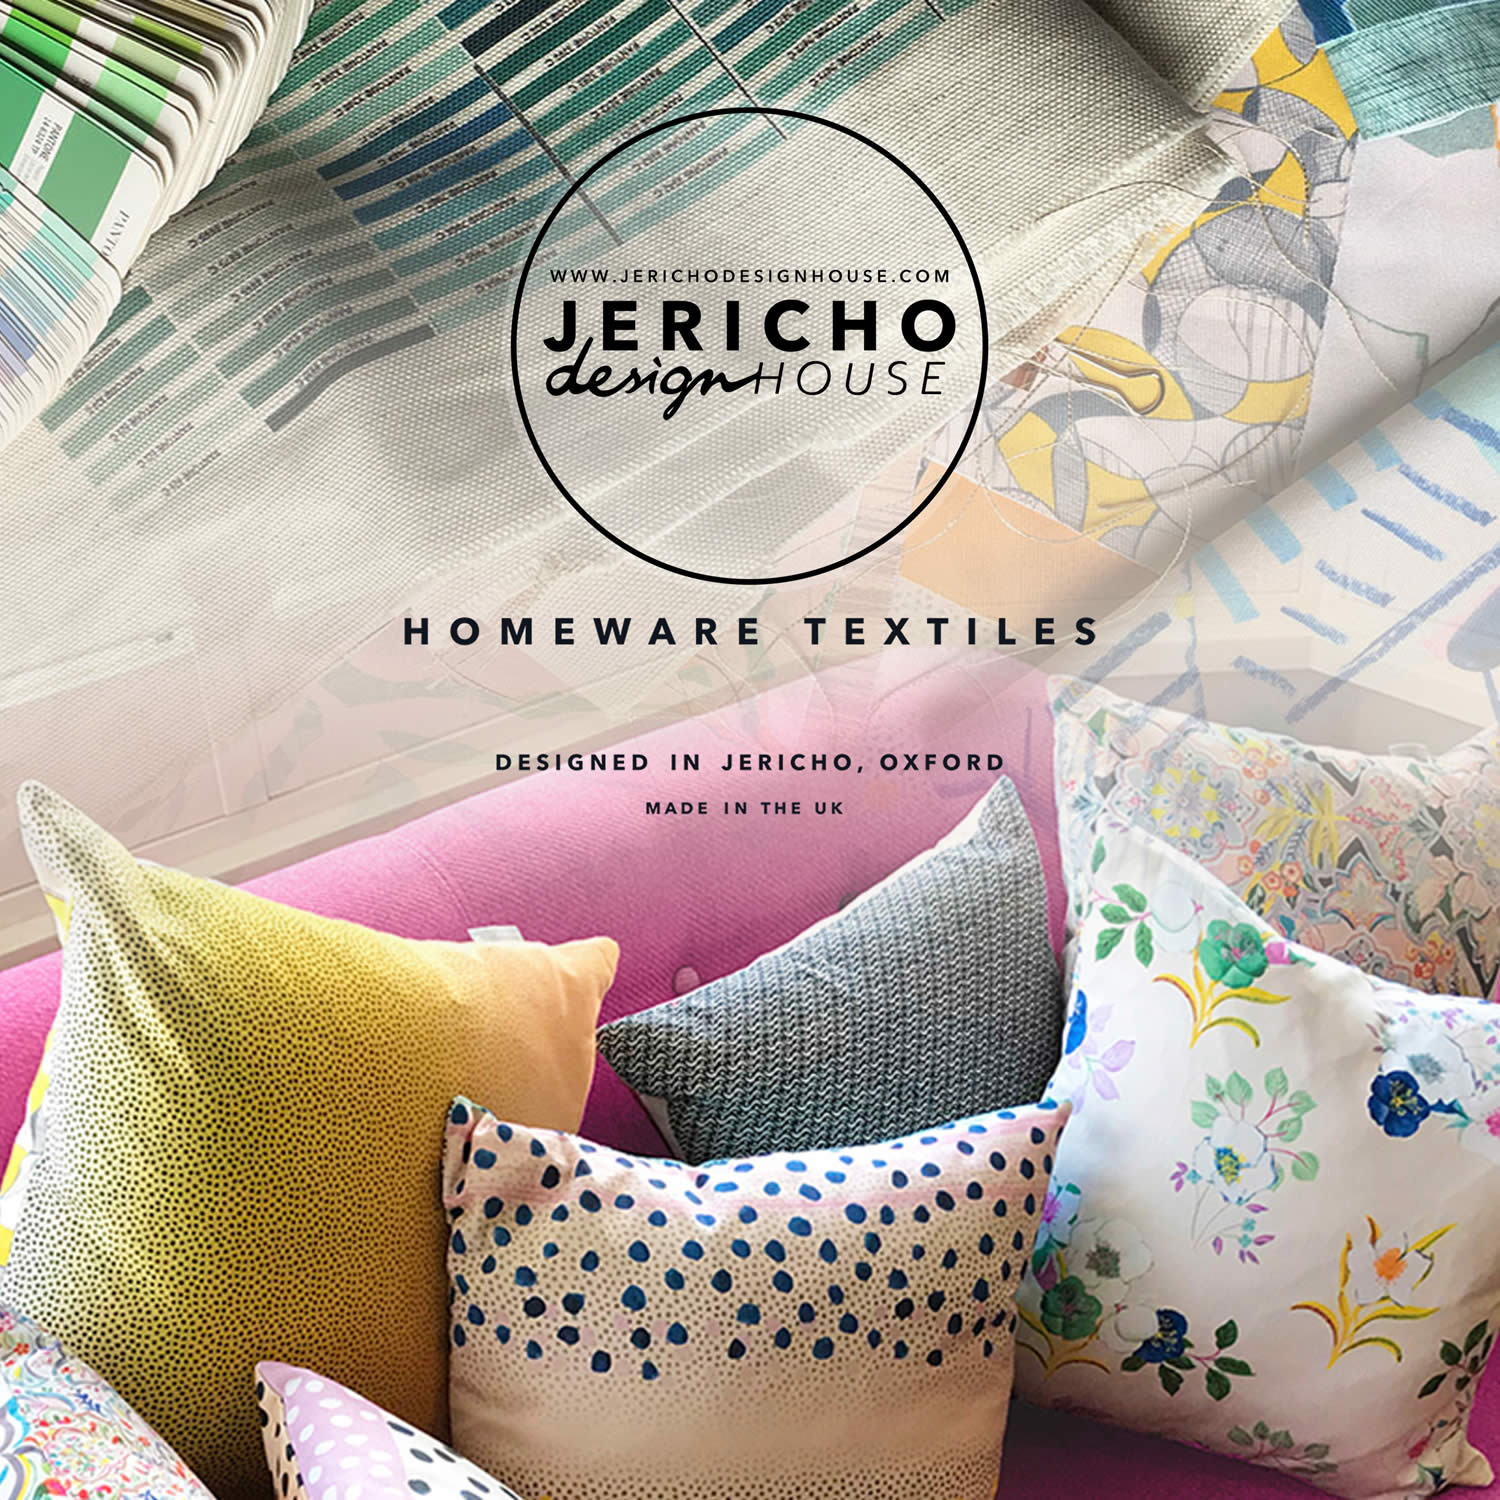 Jericho Design House Oxford